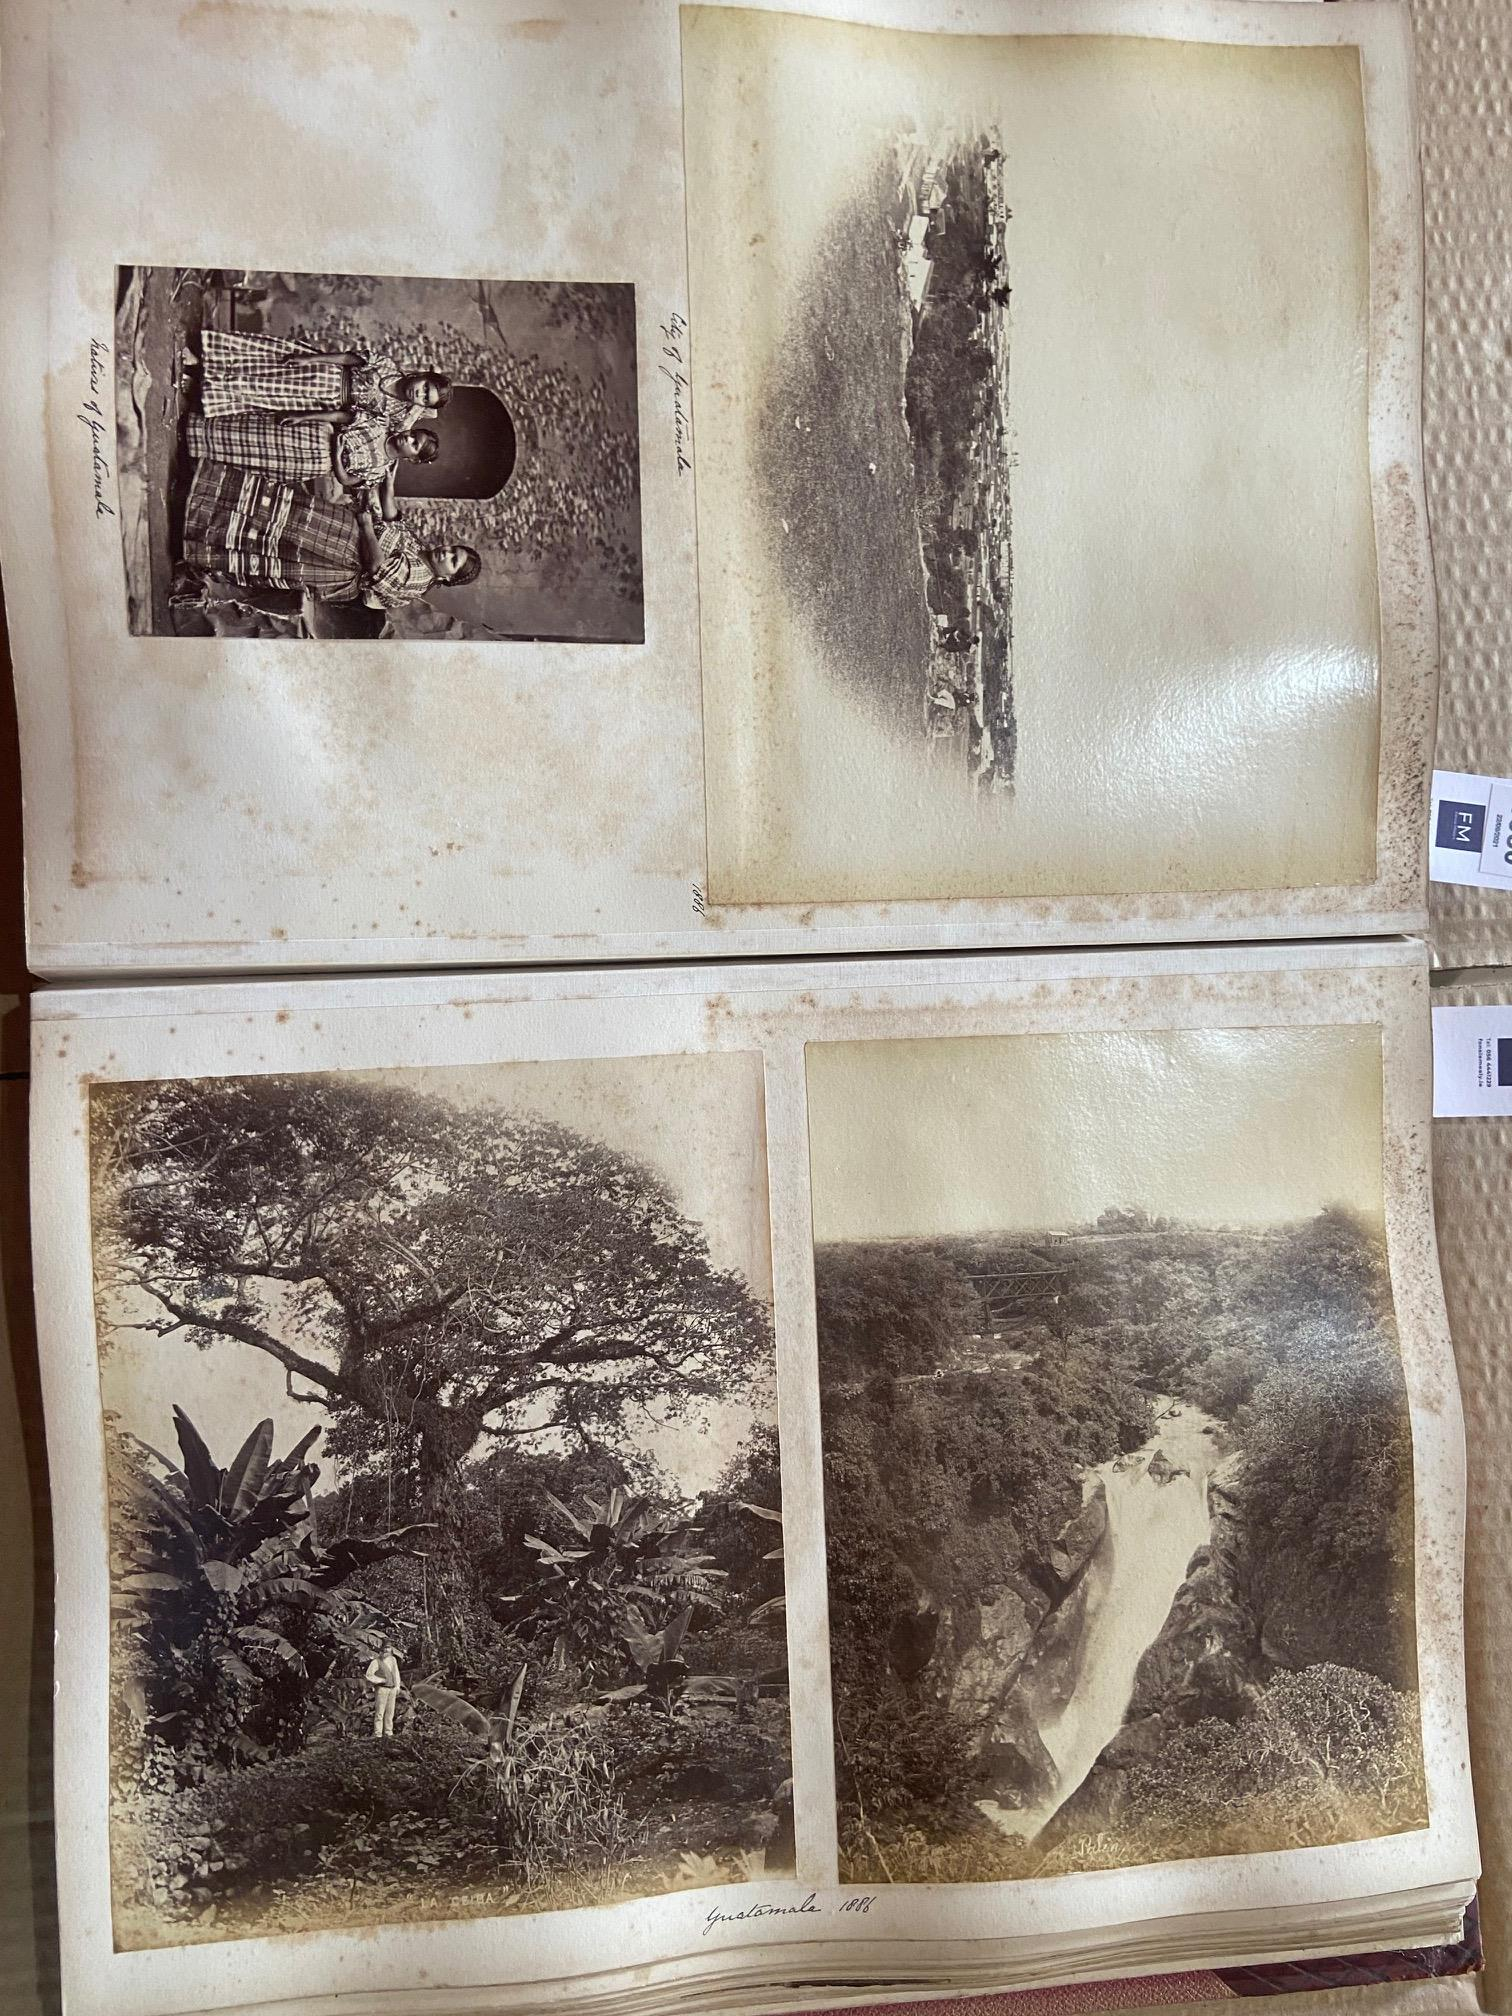 Photographs: Two large folio Albums of Photographs, each c. 1870 - 1890's. One Album contains - Image 10 of 31